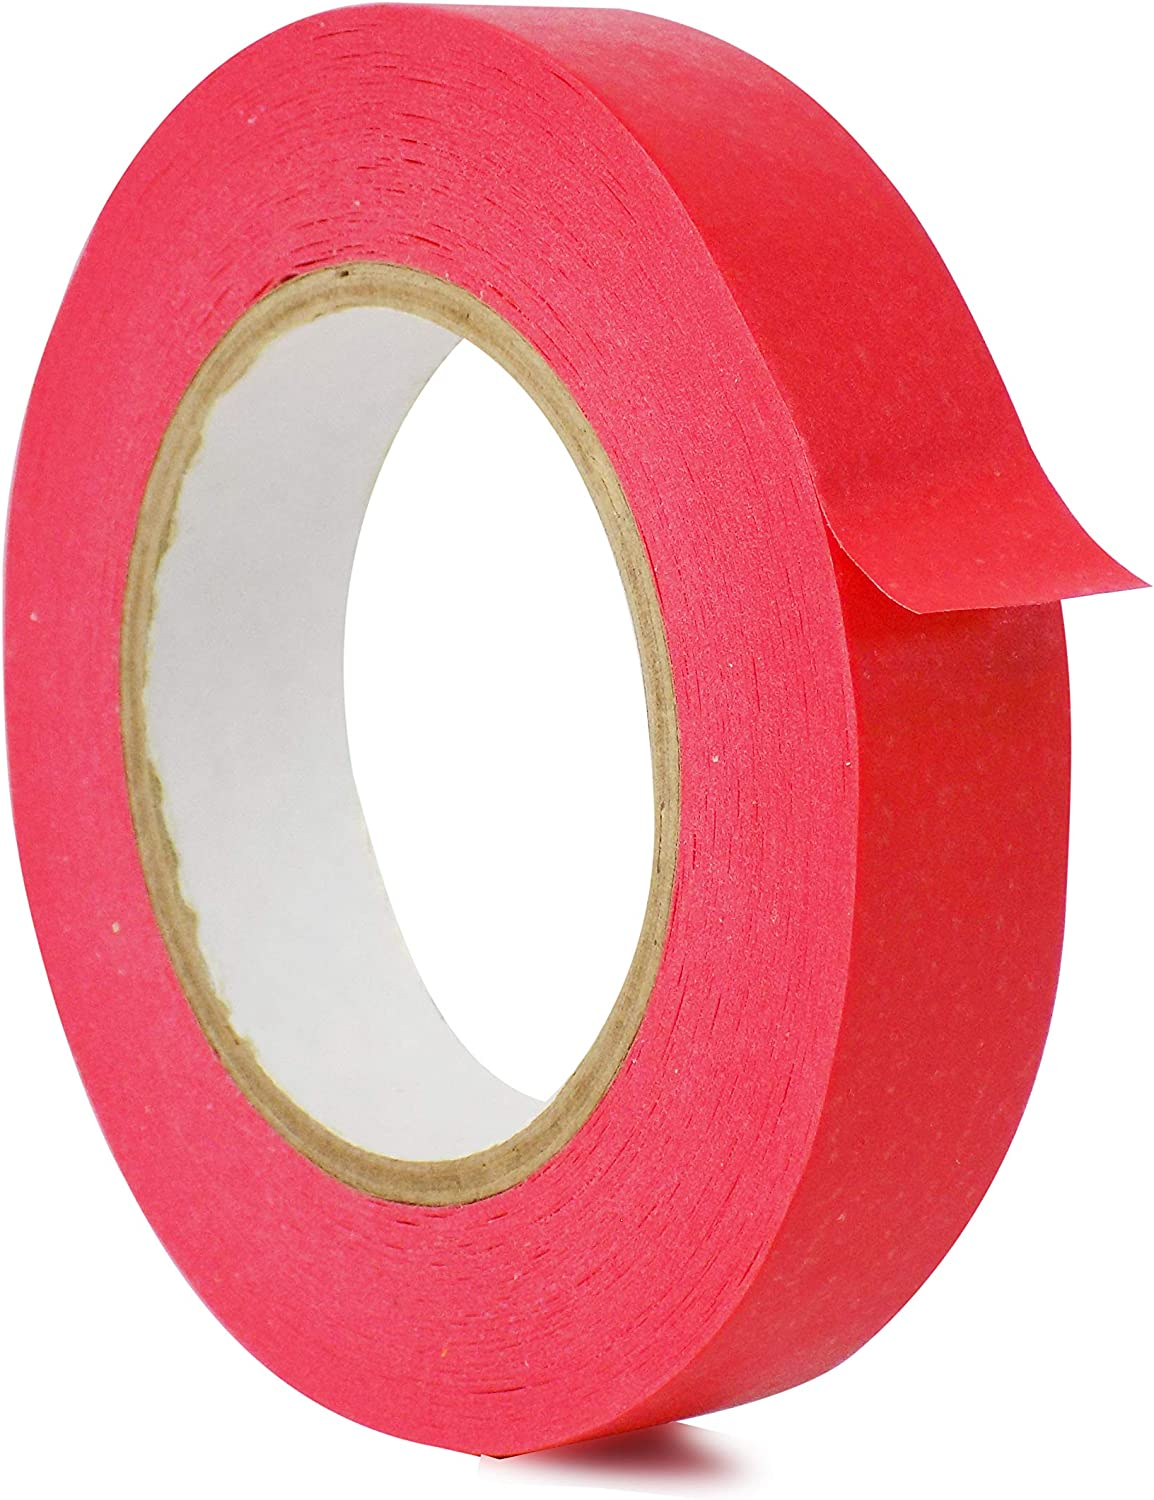 1//2 inch x 60 yds Flatback Paper Marking//Labeling Tape Residue Free for Watercolor Paper to Prevent Tearing WOD CFTC6 Console Artist Tape Light Blue